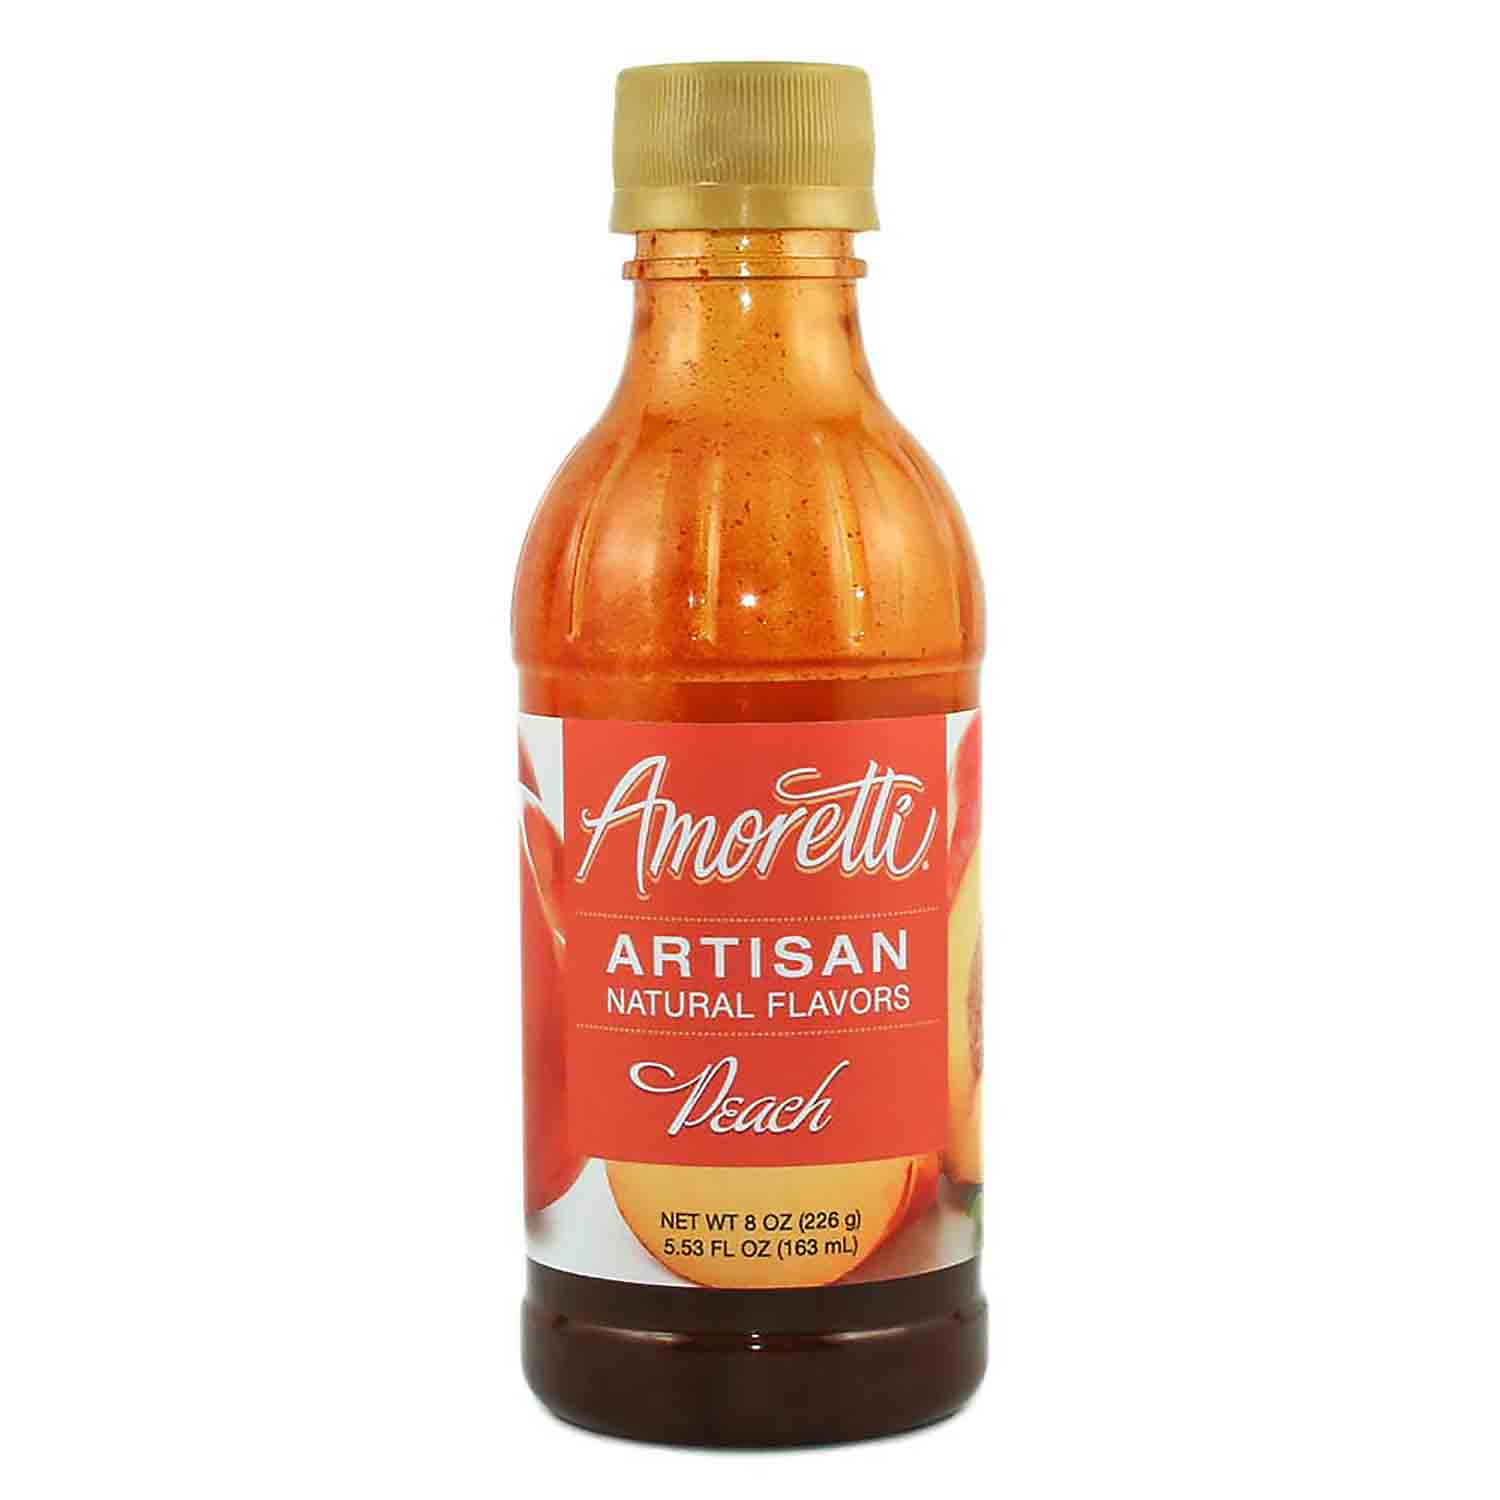 Peach Artisan Natural Flavors